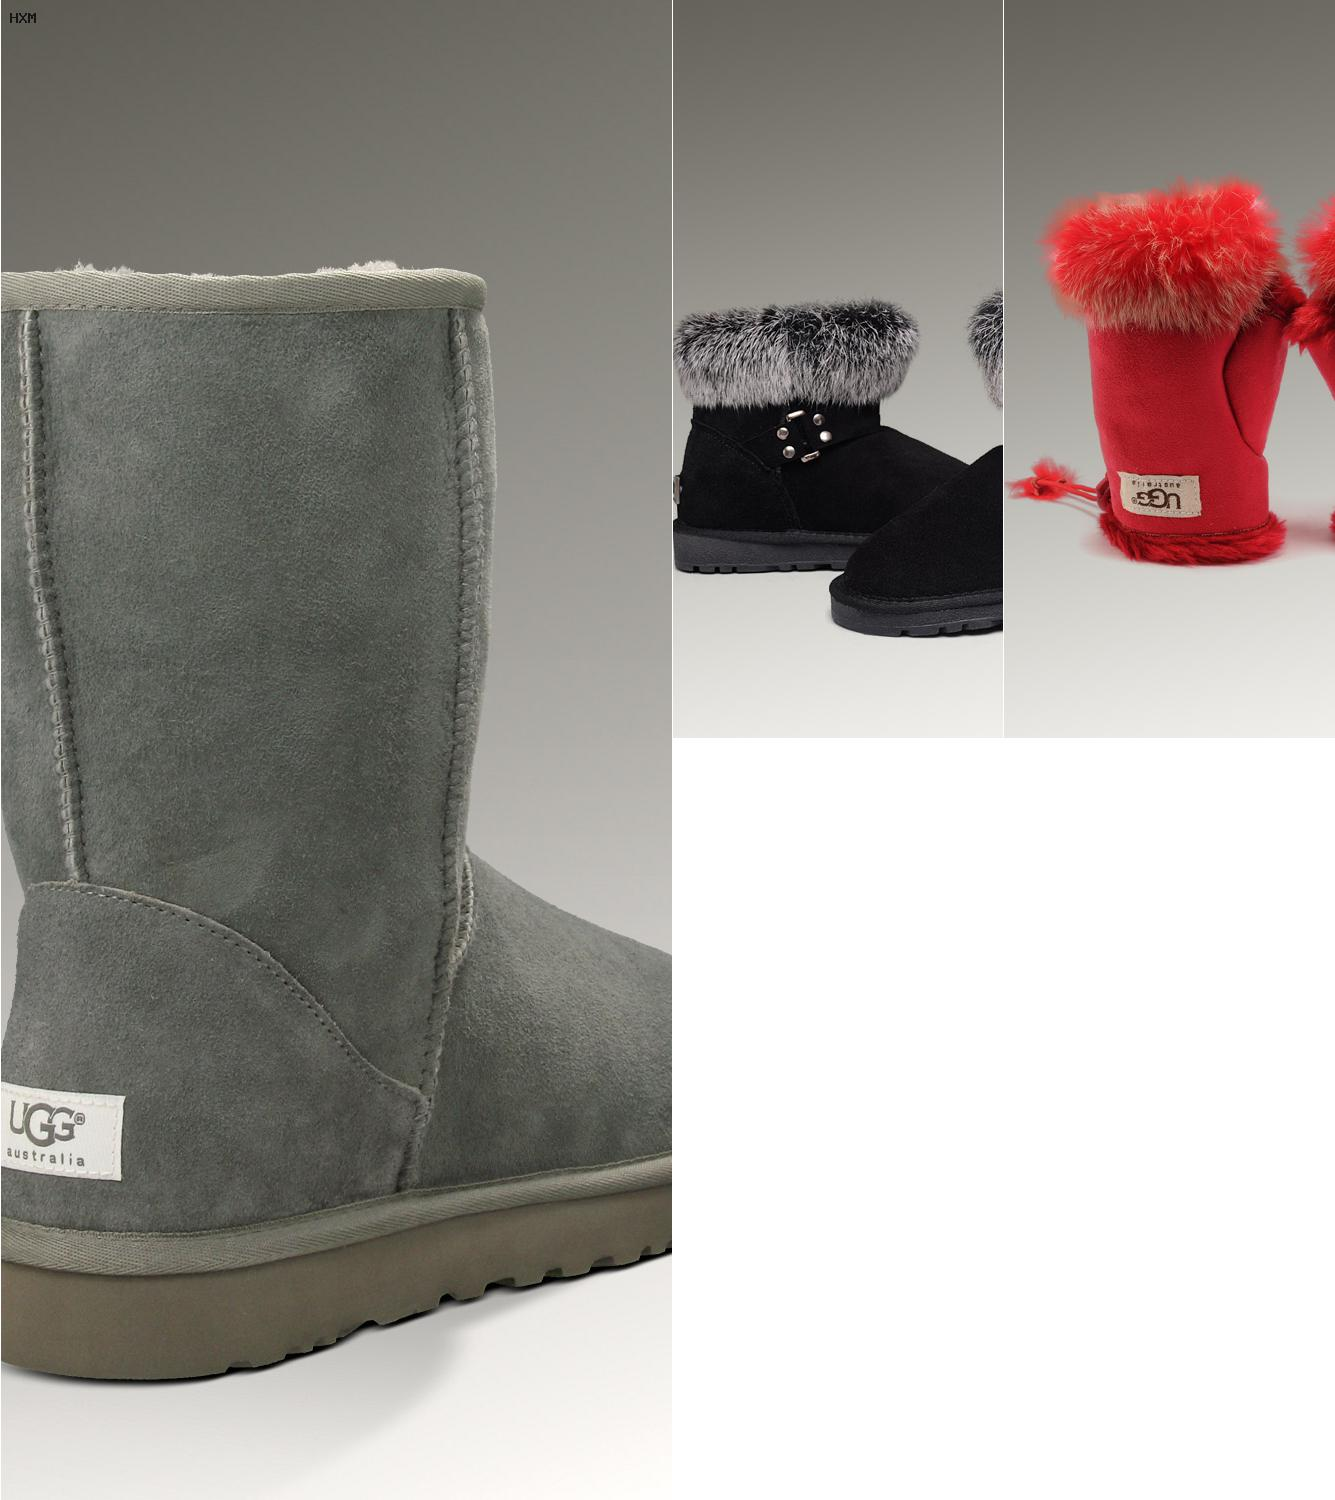 fausse ugg chaussea